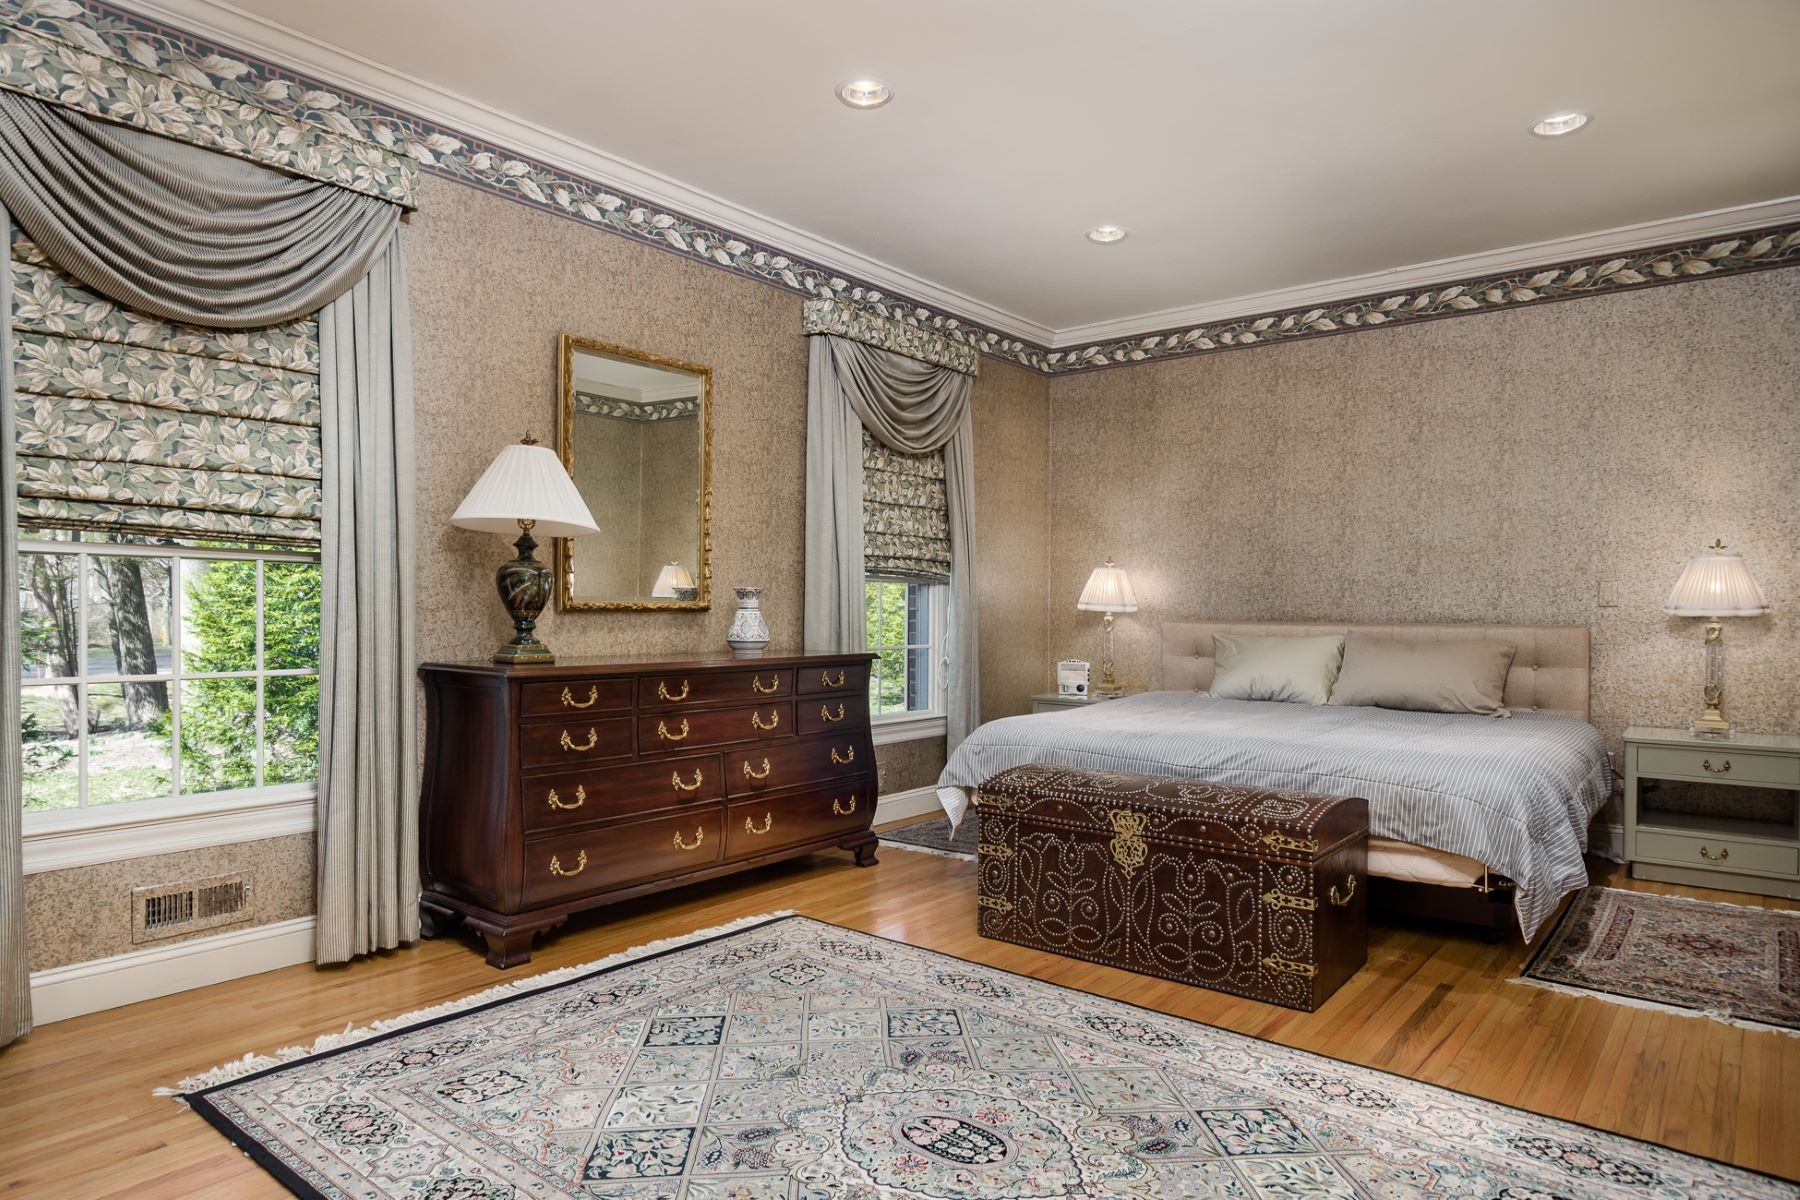 Additional photo for property listing at Calm Graciousness in Governors Lane 15 Governors Lane Princeton, New Jersey 08540 United States